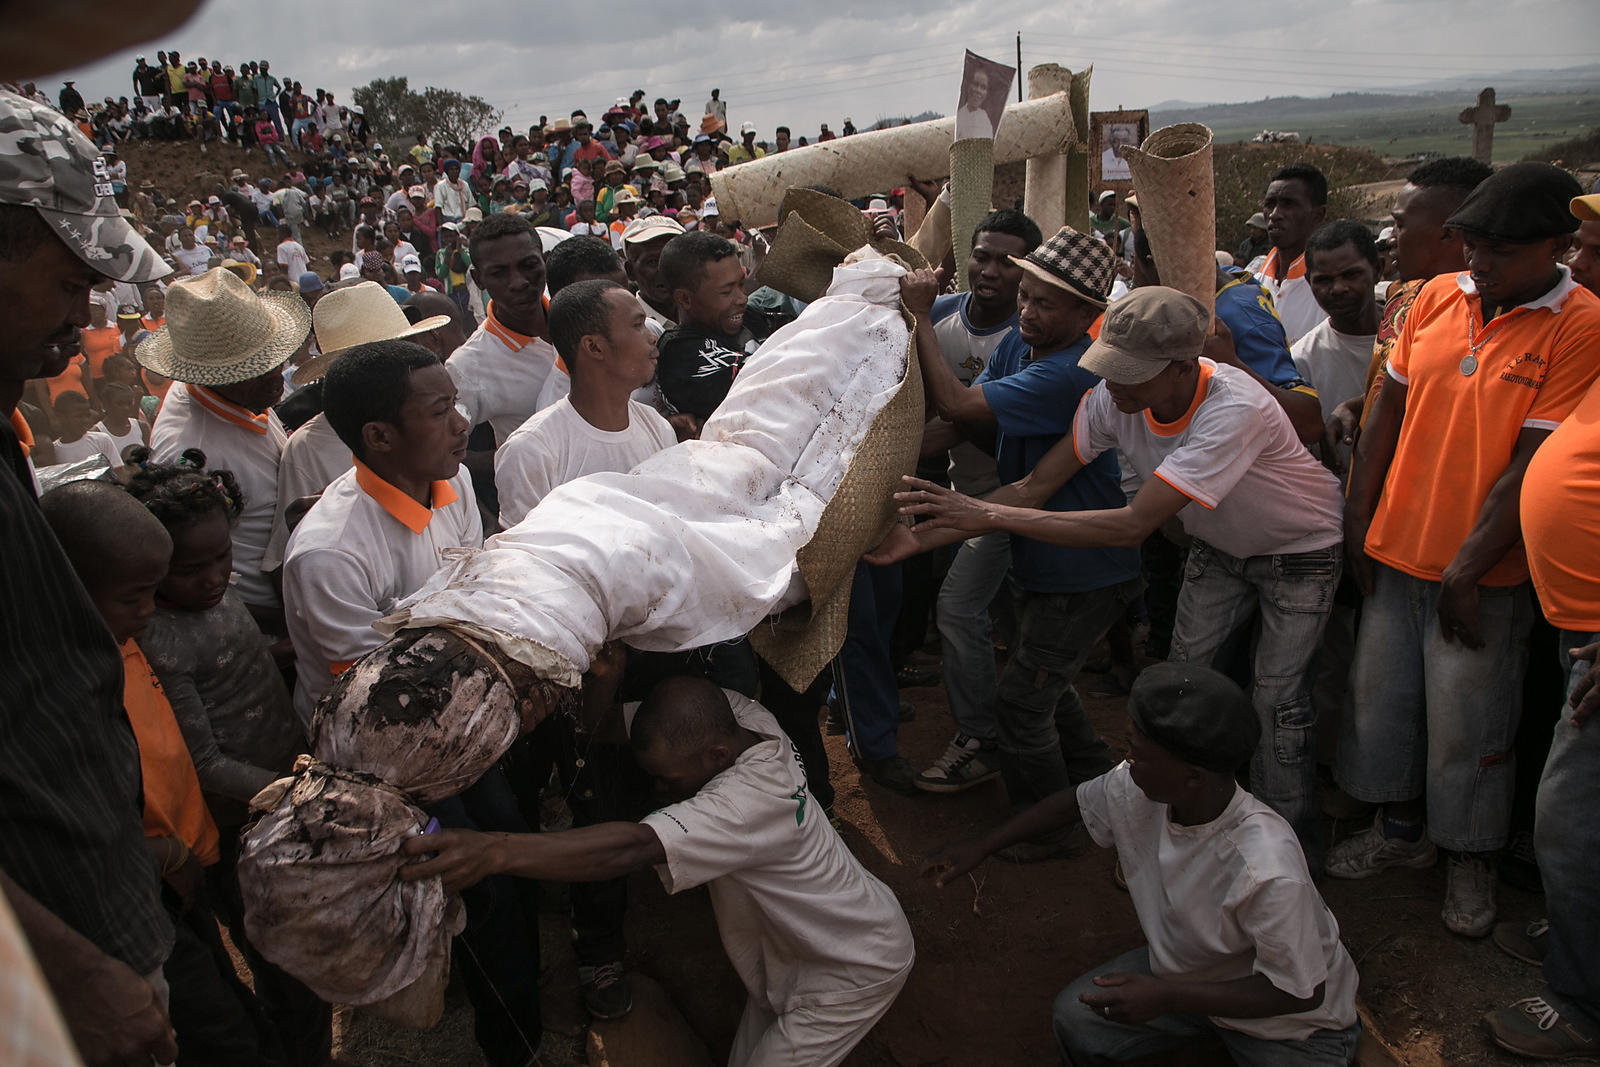 People carry a body wrapped in a sheet as they take part in a funerary tradition called the Famadihana in the village of Ambo...